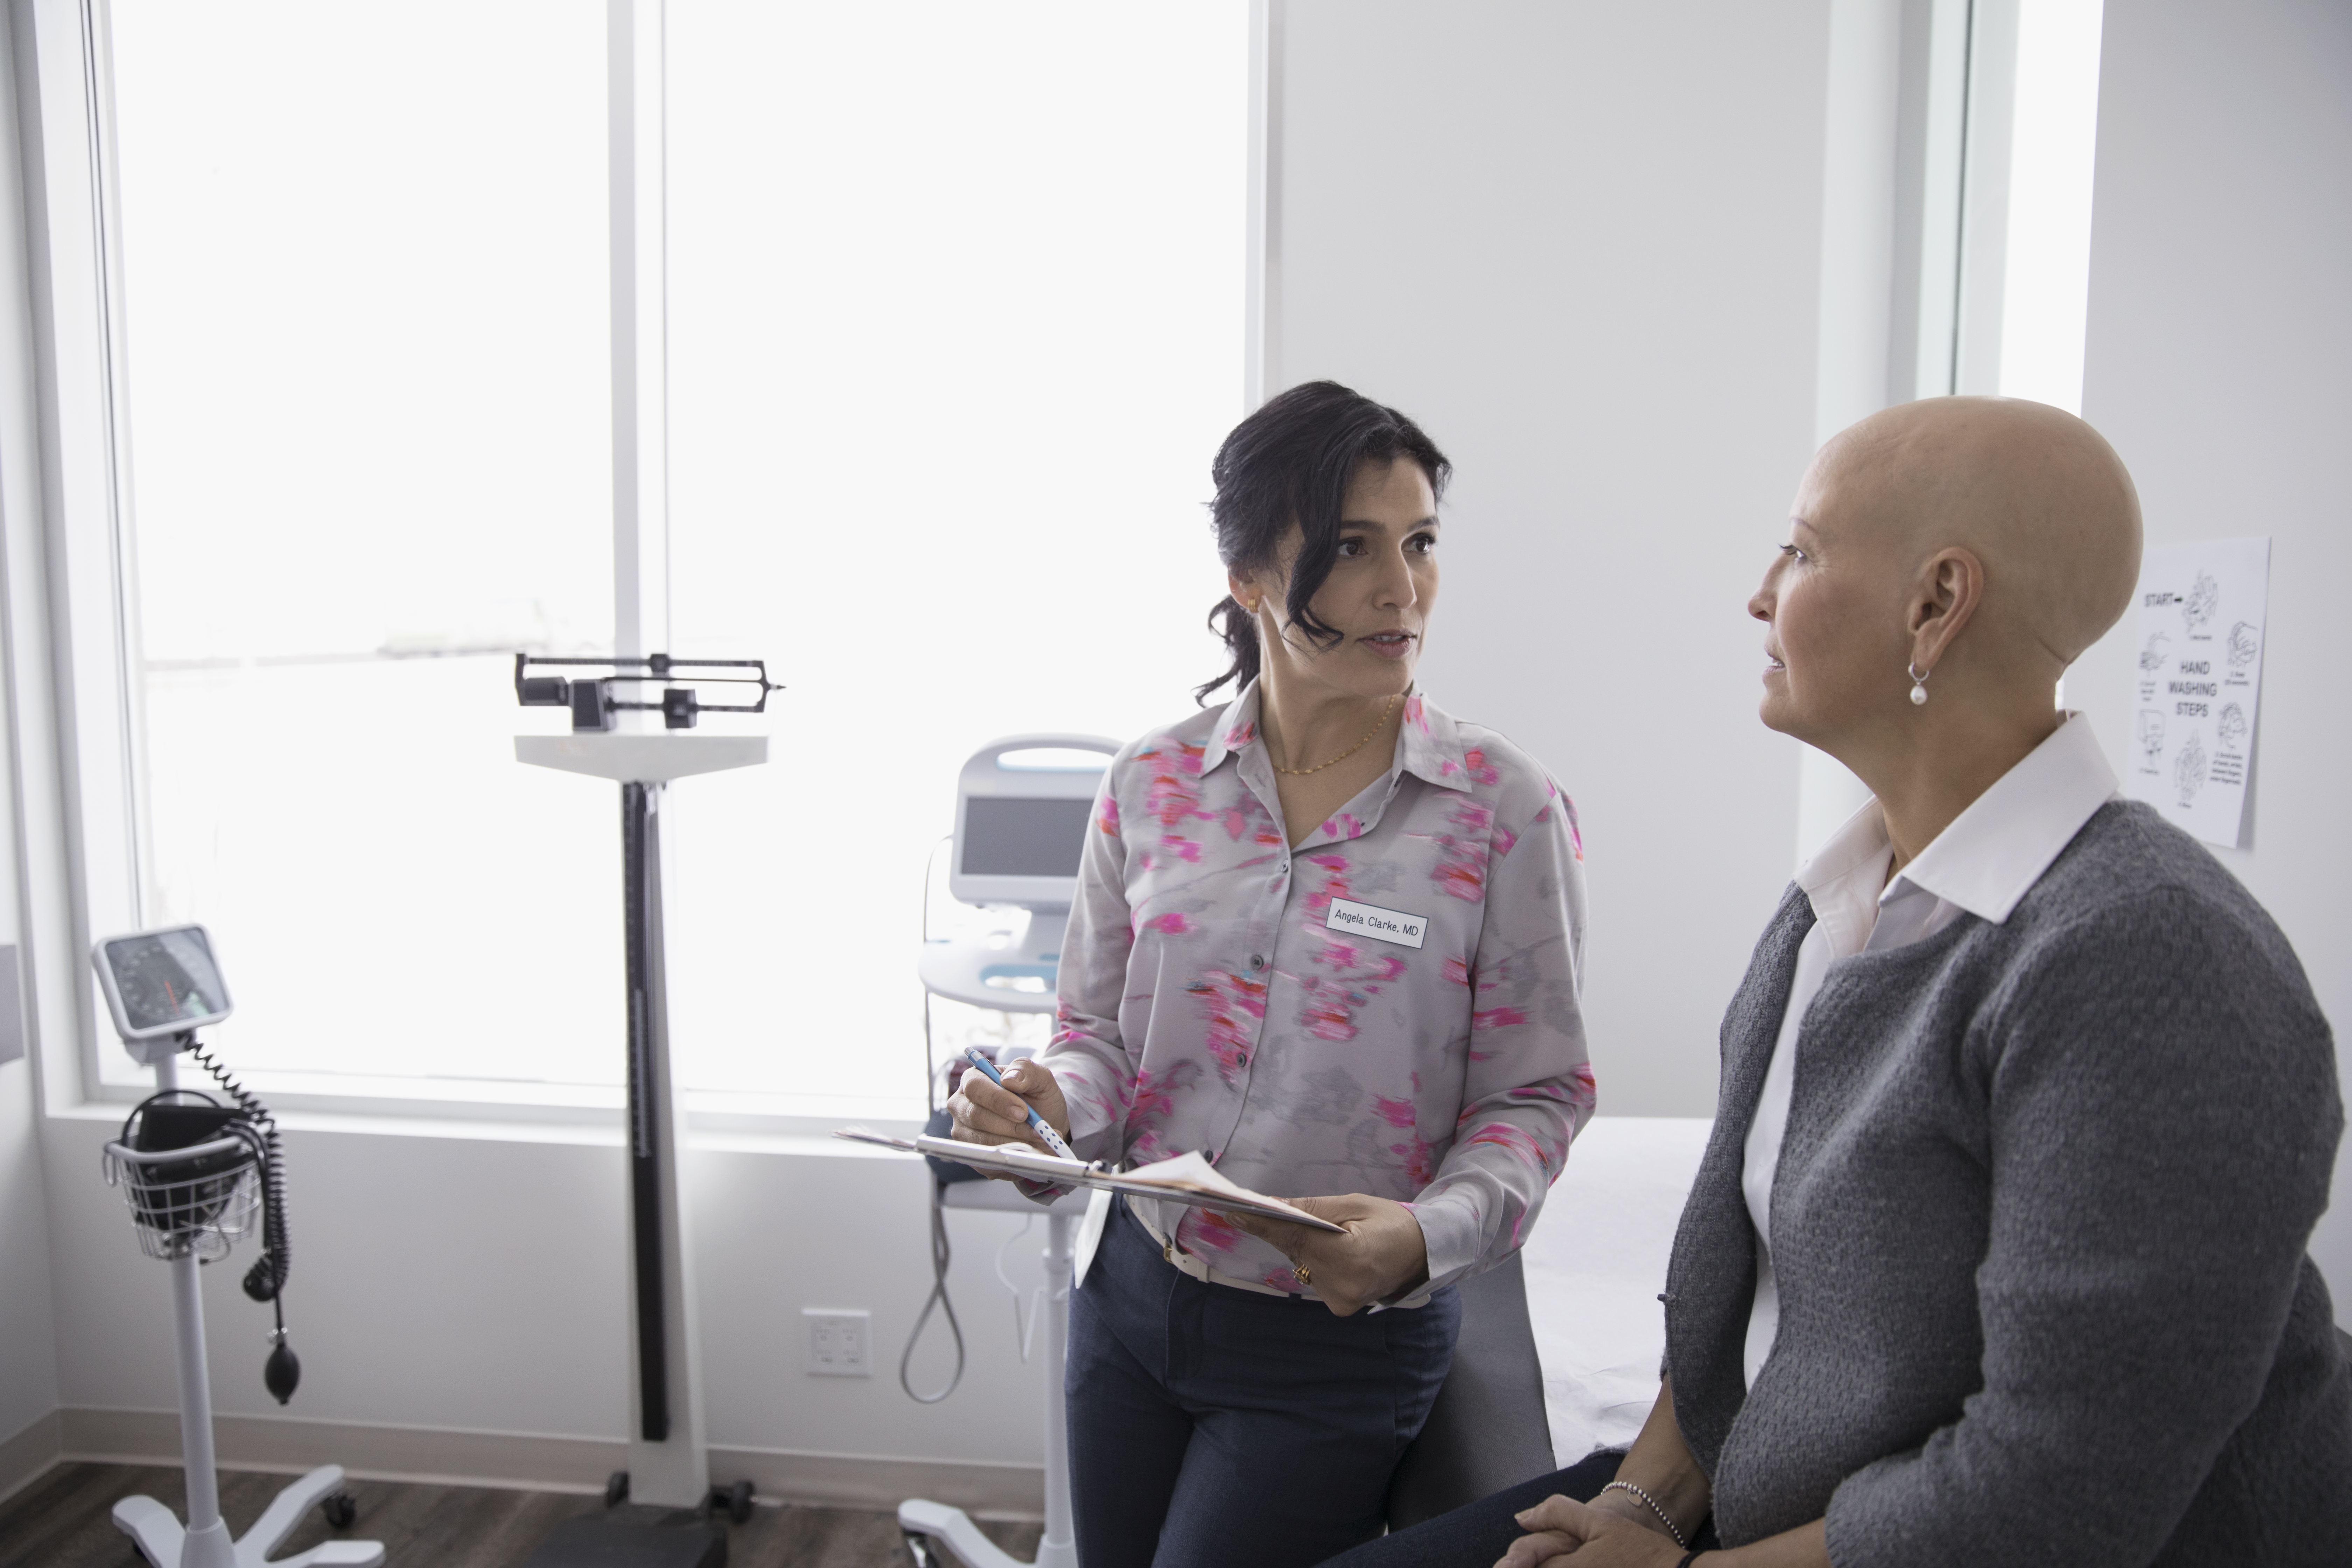 A doctor and patient talk in an examination room.